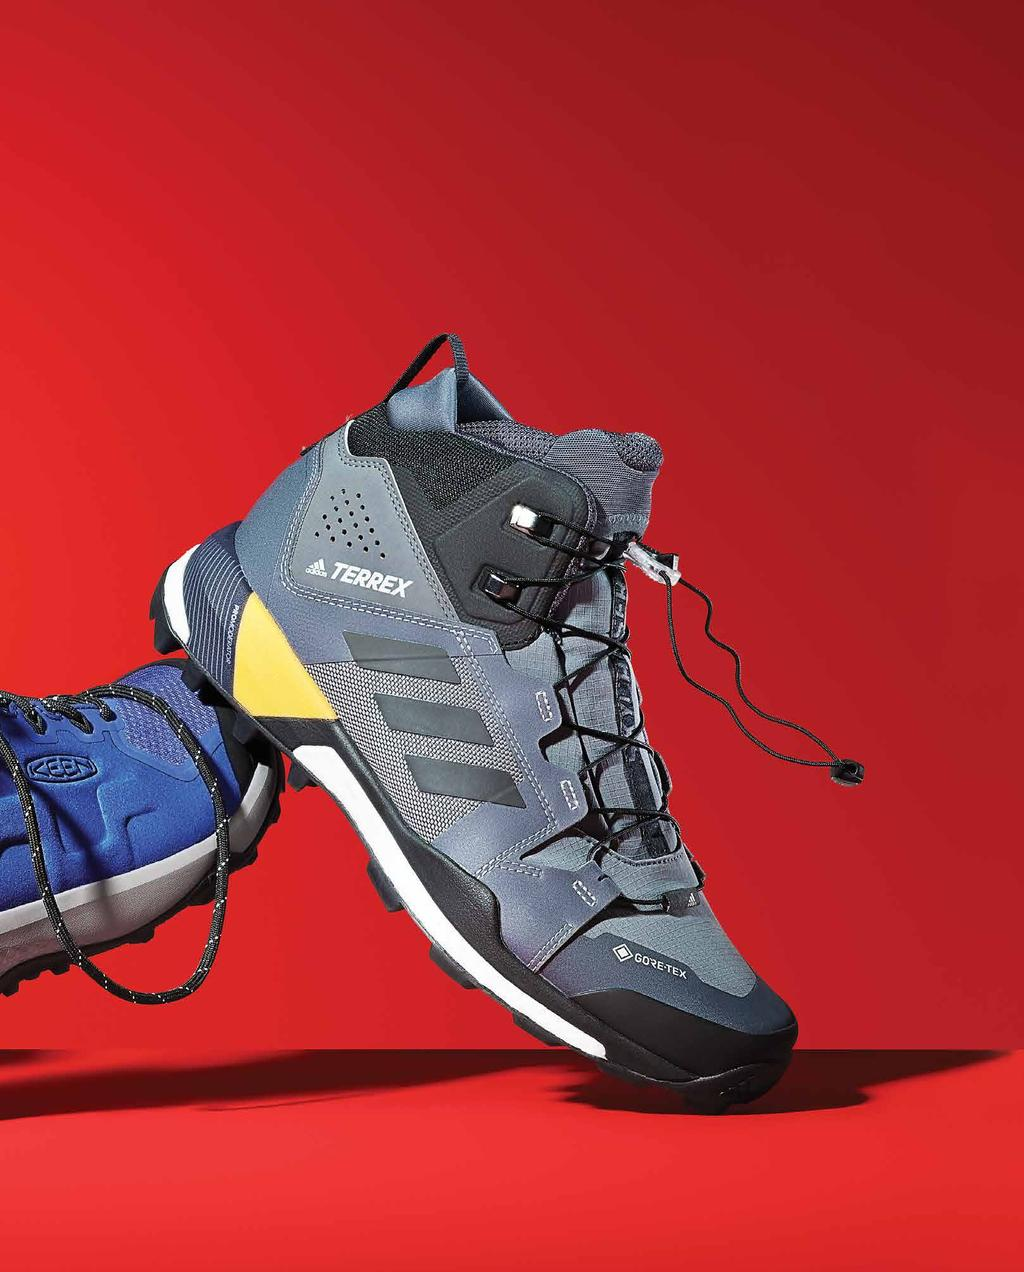 TREK MAJOR TREADS, ARCTIC DETAILS, CUSHY LAYERS, LACING SYSTEMS AND OTHER FEATURES GIVE OUTDOOR S NEWEST HIKERS, RUNNERS AND ALL-PURPOSE BOOTS BOTH FUNCTIONAL BOOST AND AN IRON MAN-LIKE BRAVADO.